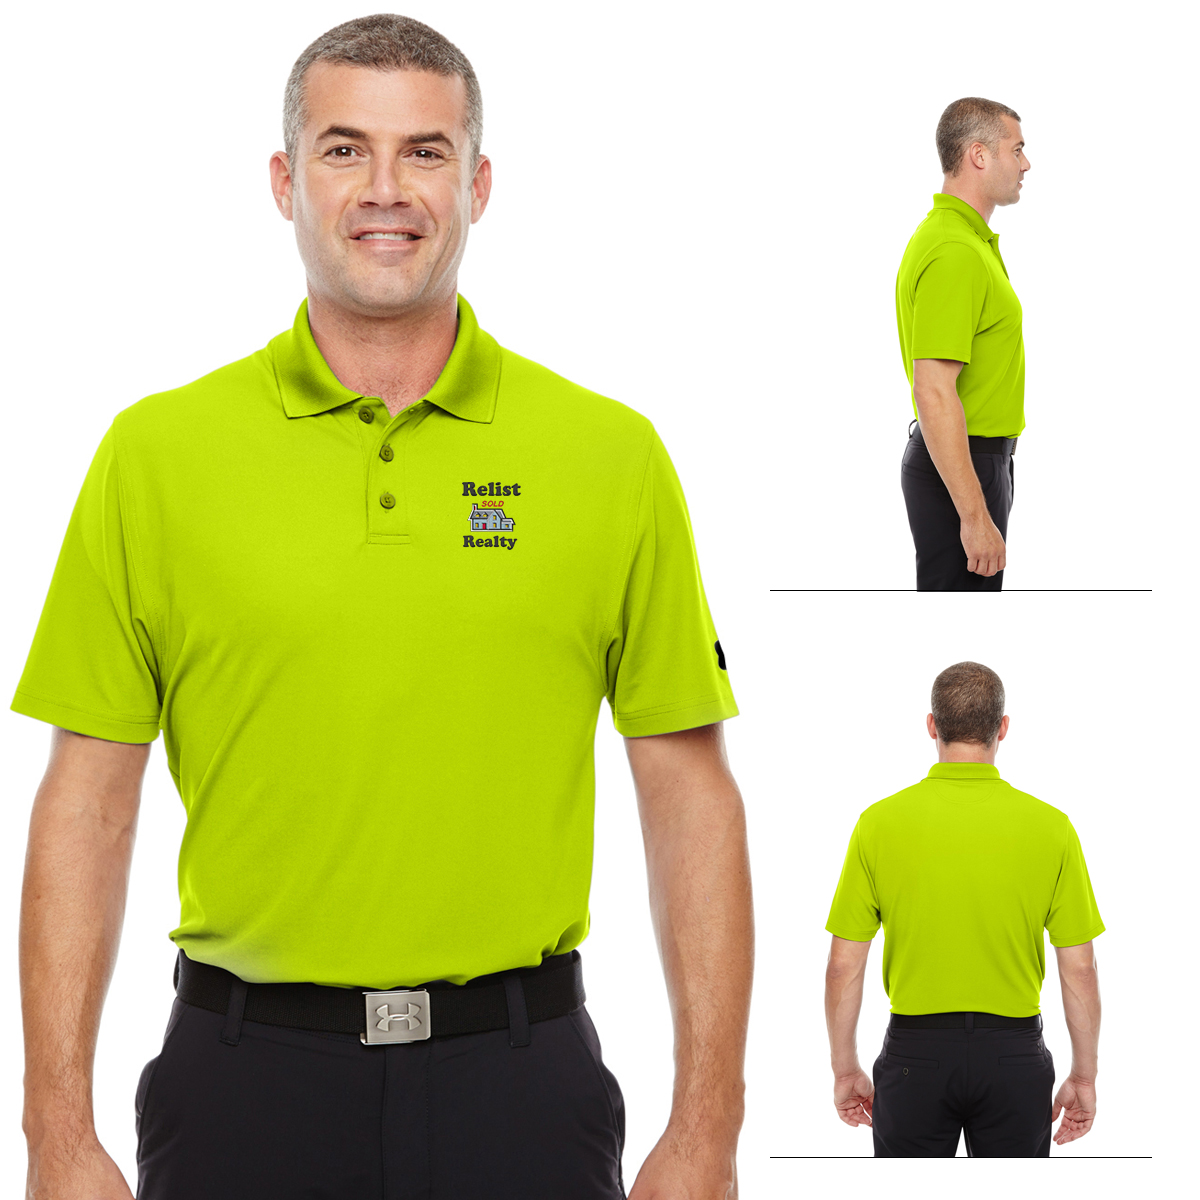 8d50611d0 Customized Under Armour Men's Corp Performance Polo | Promotional ...